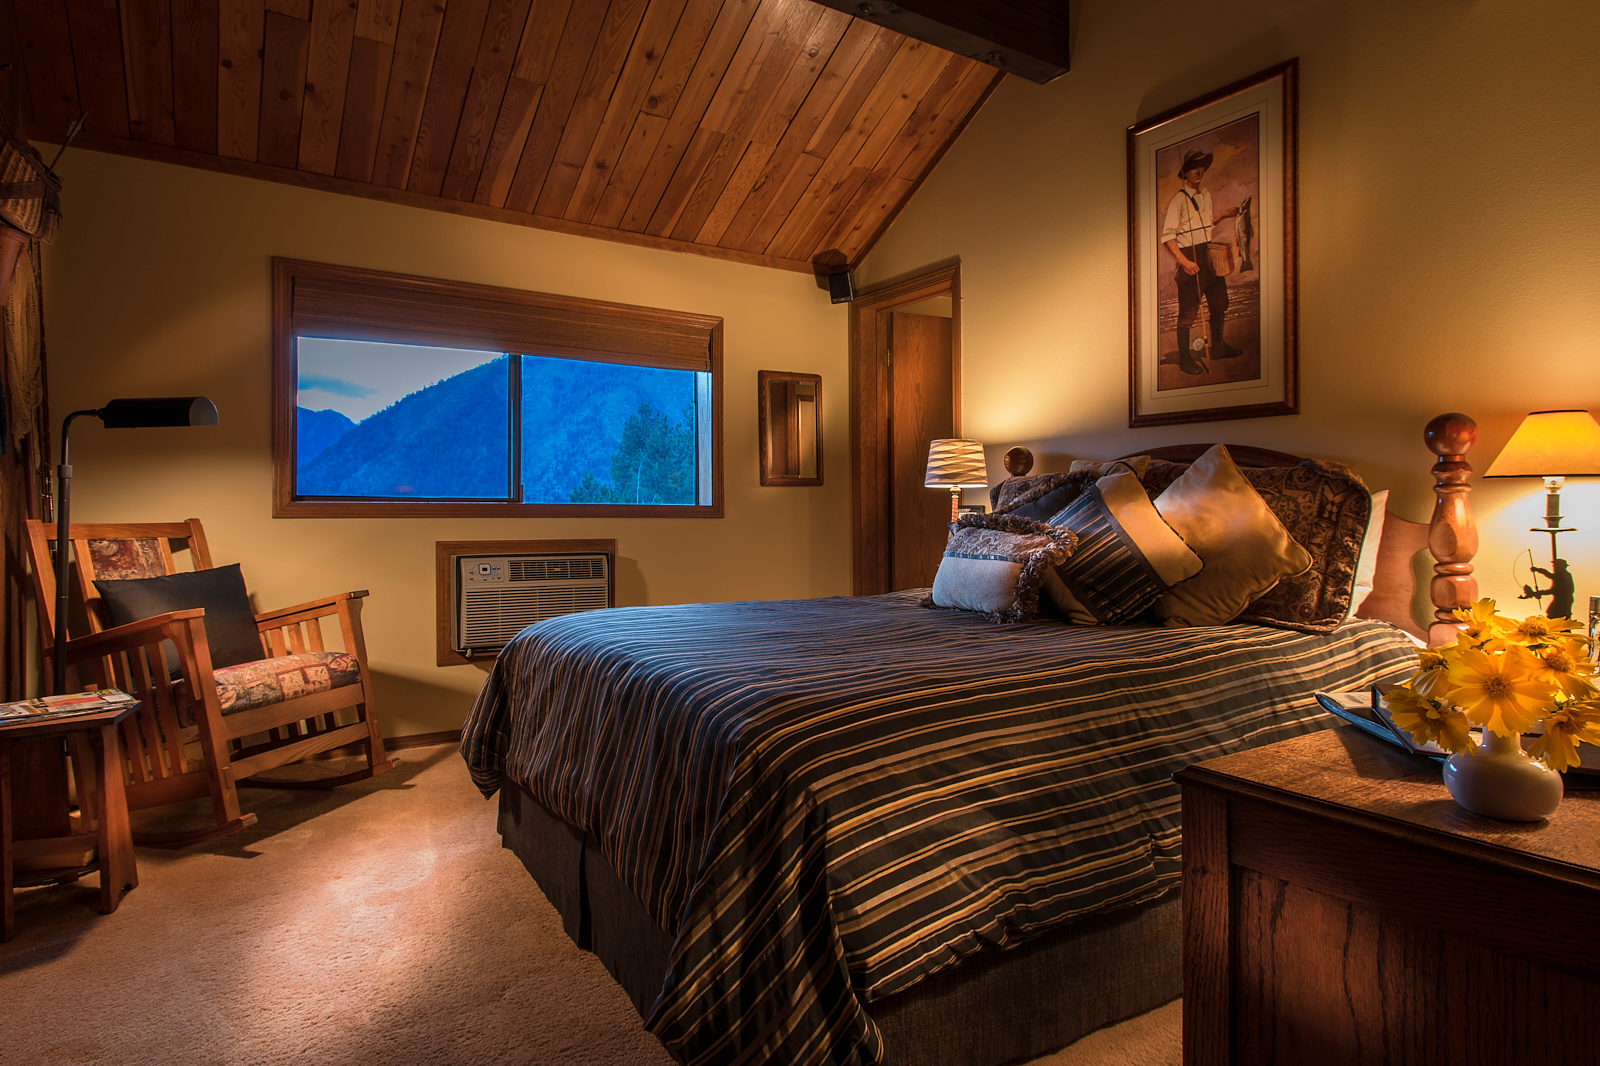 The Sportsman - A gorgeous view of the Cascades with a queen bed and vaulted pine ceiling.